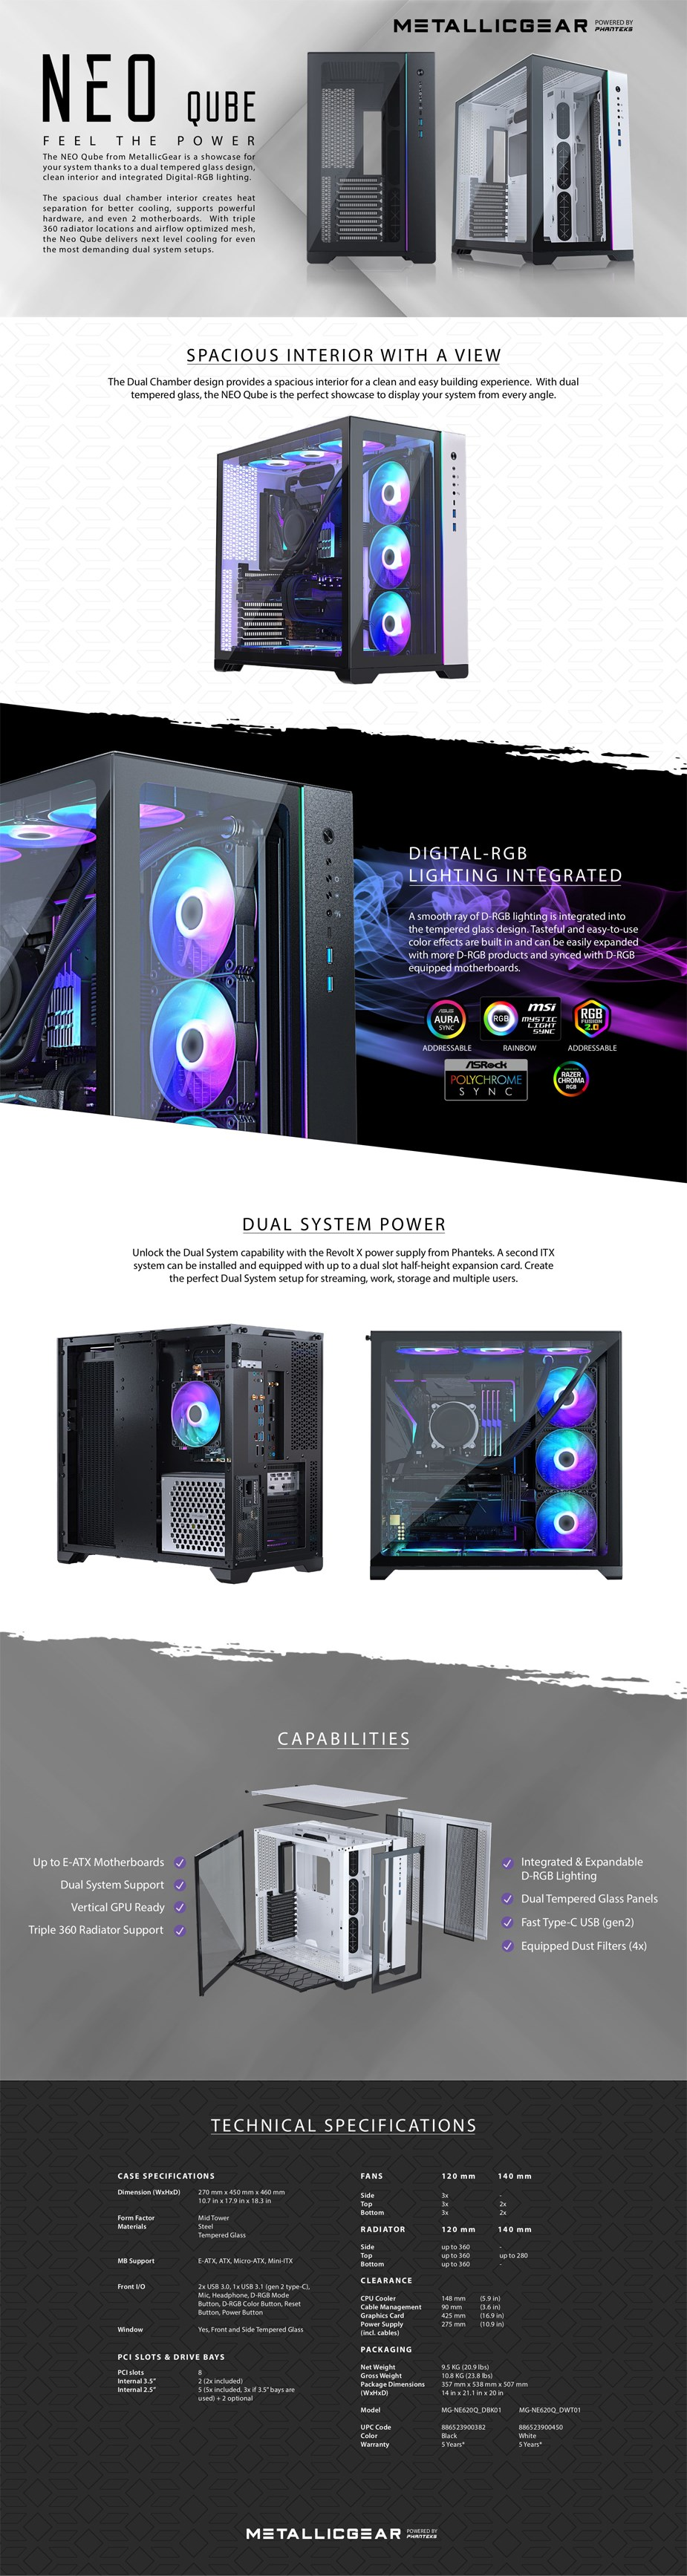 MetallicGear Neo Qube RGB Tempered Glass Full Tower E-ATX Case - White - Overview 1